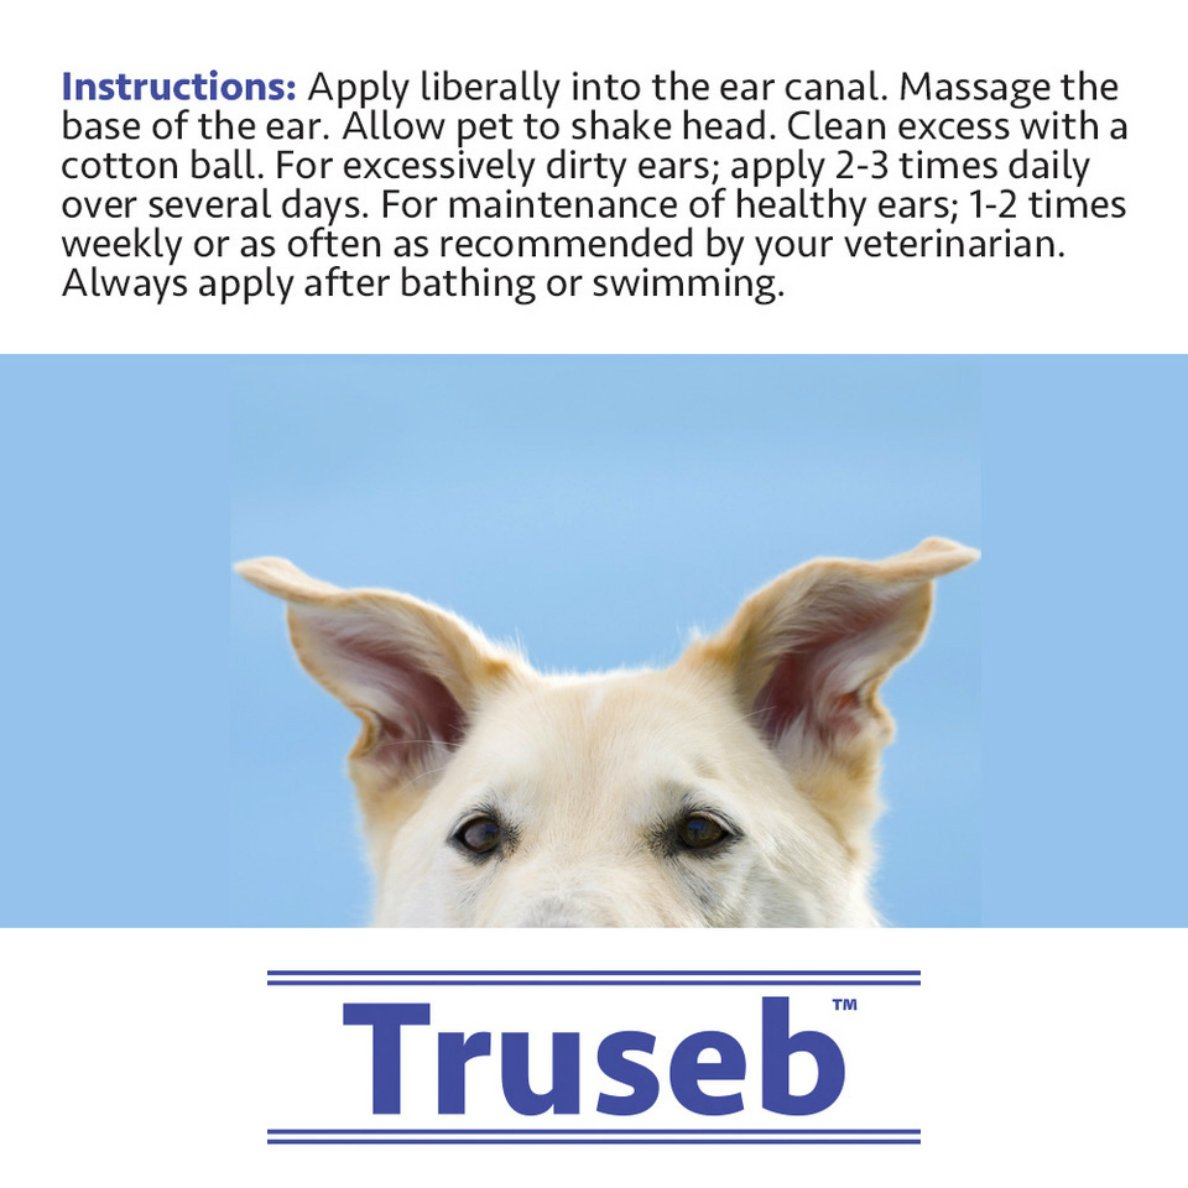 Truseb |#1 Otic Ear Cleanser & Drying Solution with Aloe Vera for Dogs and  Cats- Otic Rinse - Effective Against Mites, Yeast, Odor and Controls